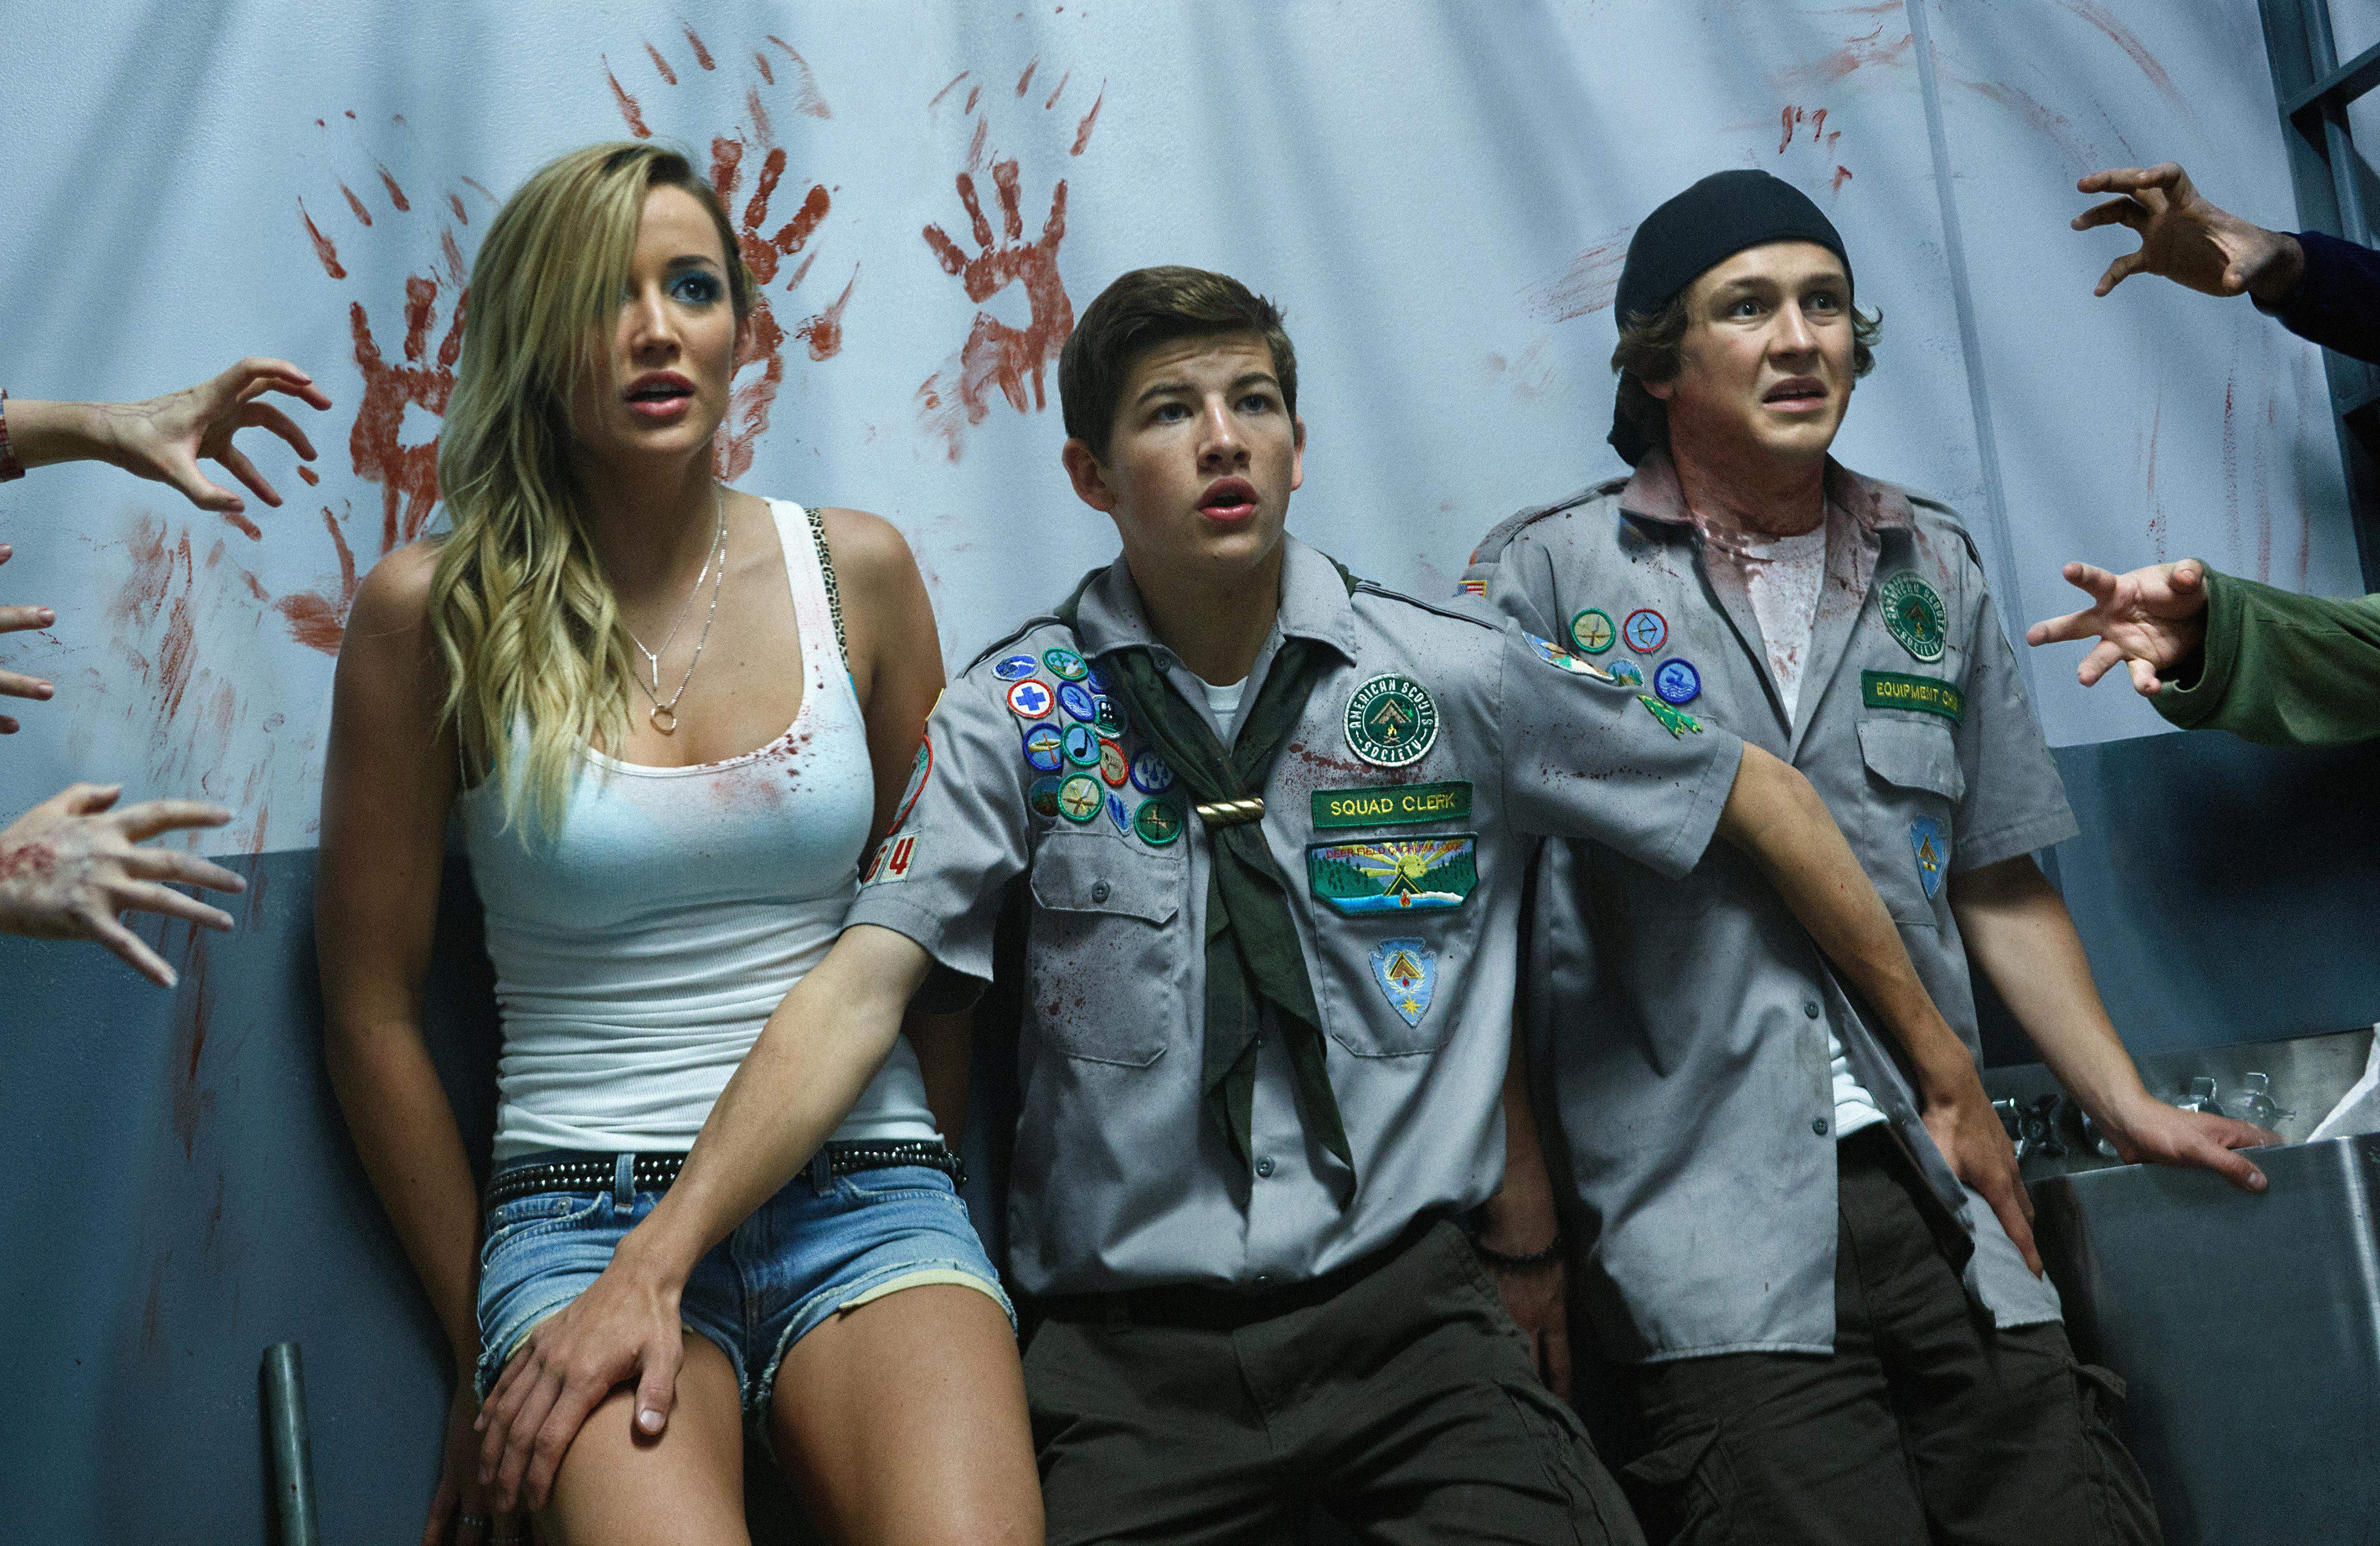 Sarah Dumont, Tye Sheridan and Logan Miller in Scouts Guide To The Zombie Apocalypse